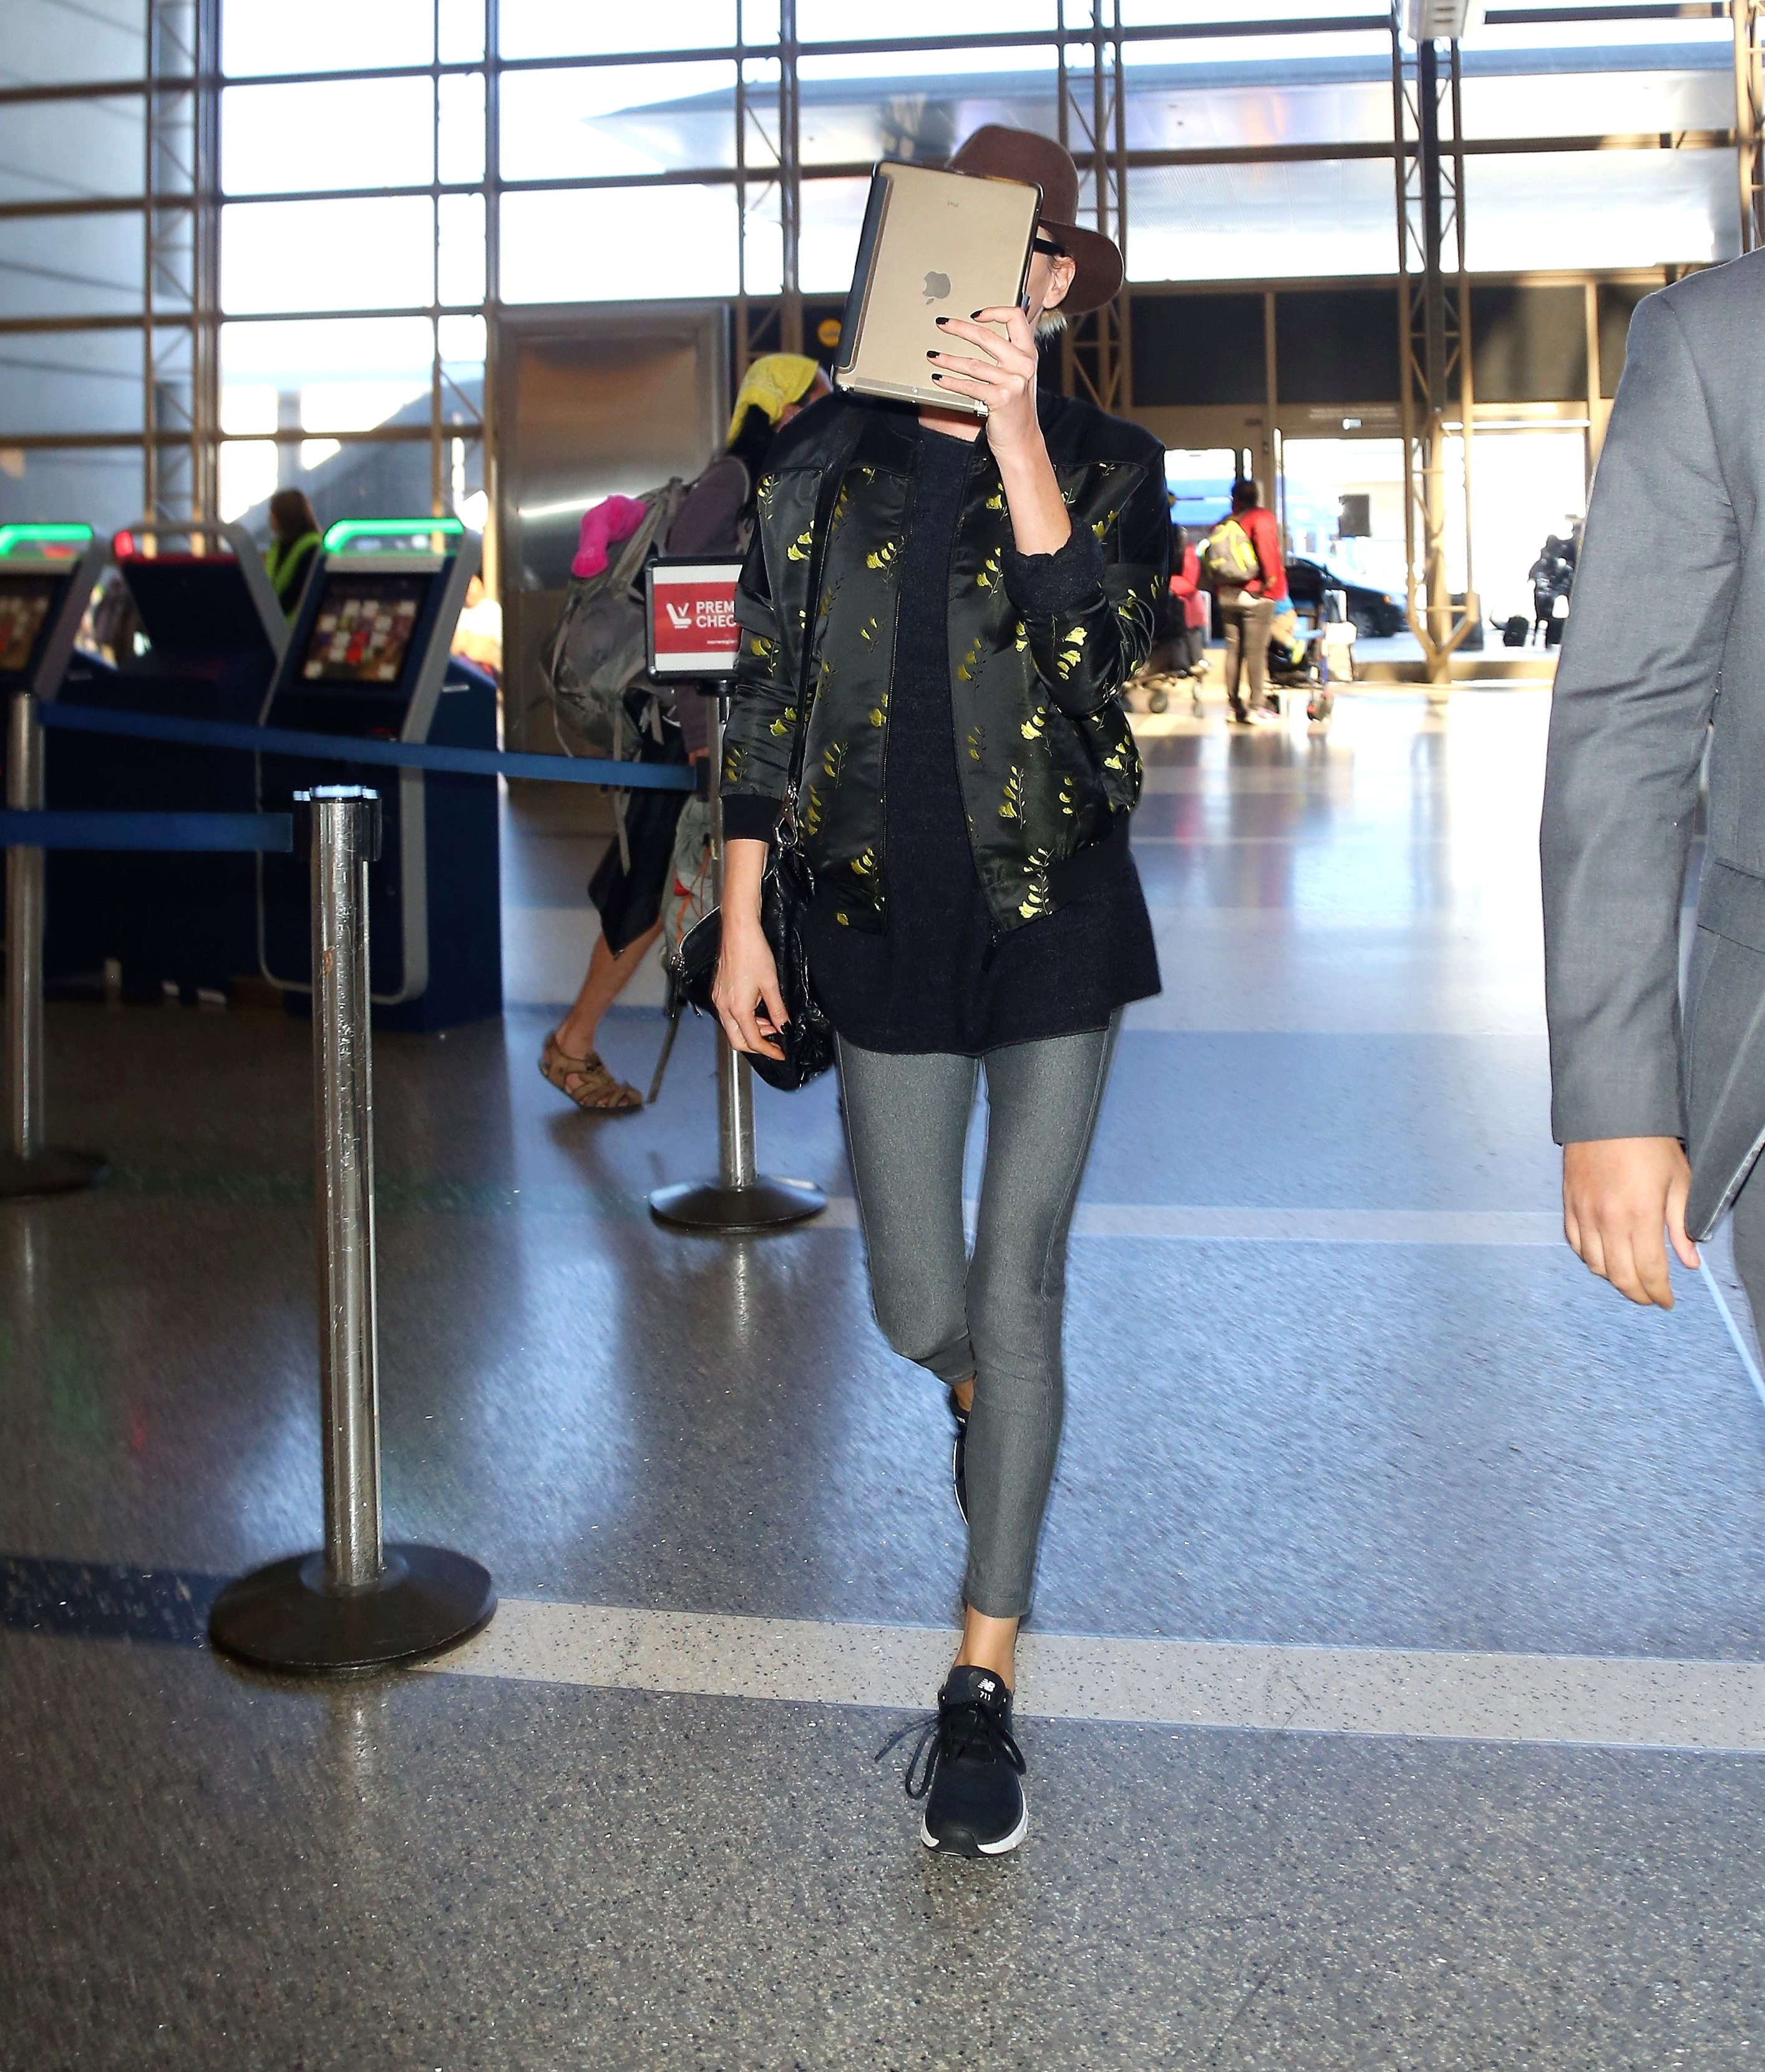 PREMIUM EXCLUSIVE Please contact X17 before any use of these exclusive photos - x17@x17agency.com   Charlize Theron arrived at LAX, rocking a cool hat, big sunglasses and a comfy jacket, with tights, catching a flight out of LA, on Thursday, March 15, 2018  Perez/X17online.com  PREMIUM EXCLUSIVE